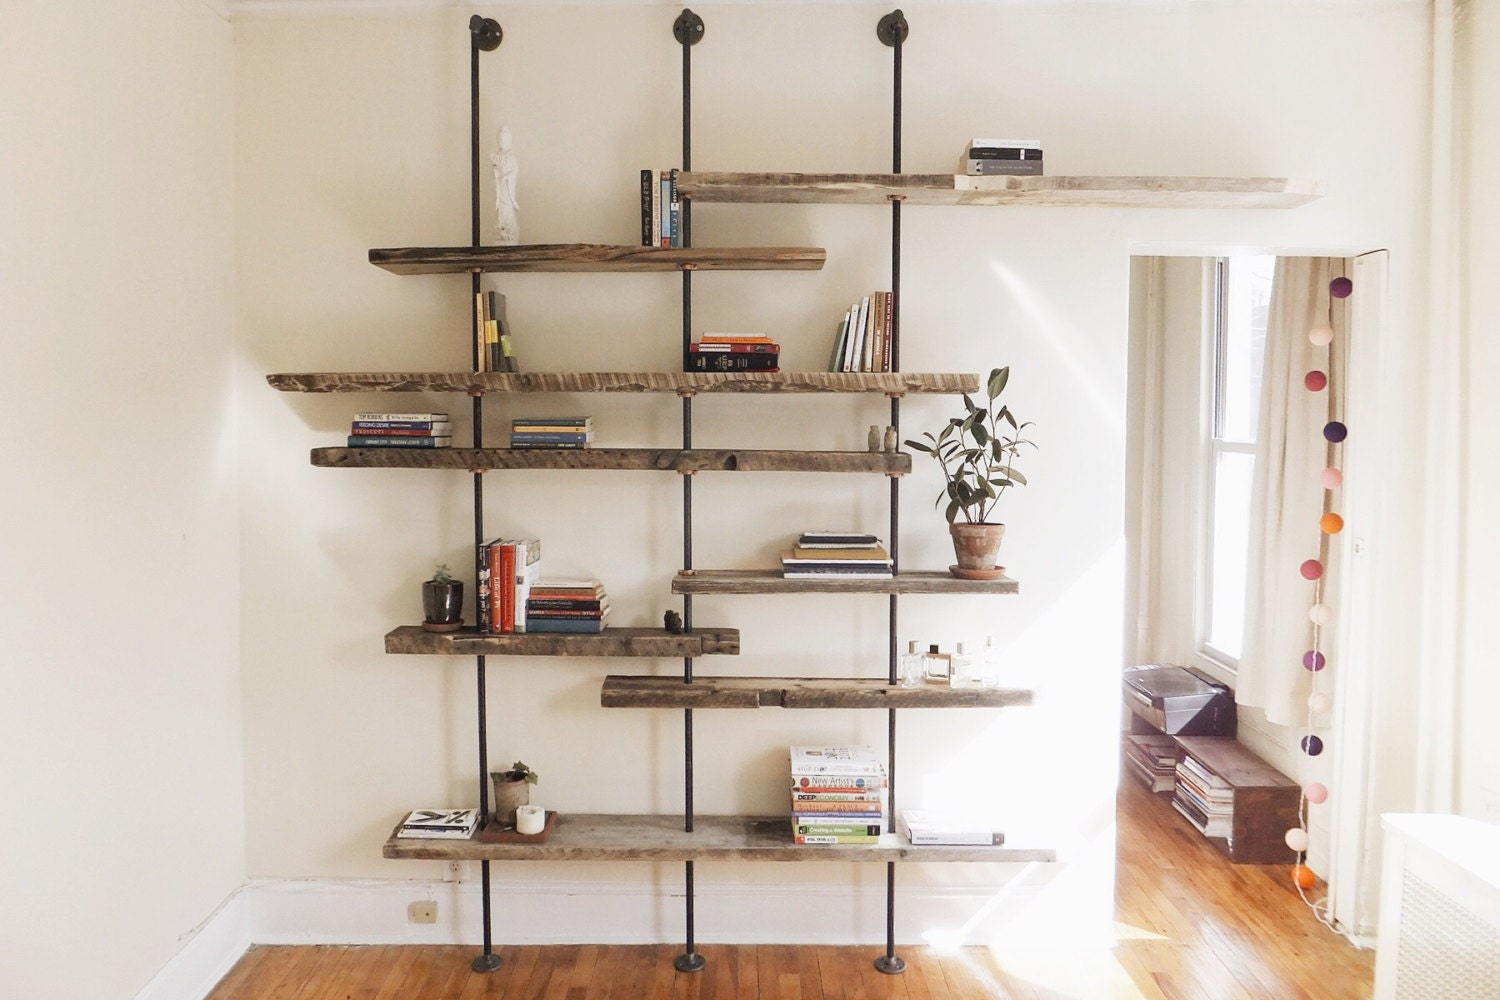 Modern Reclaimed Wood Shelving Unit Using Aged Salvaged Wood